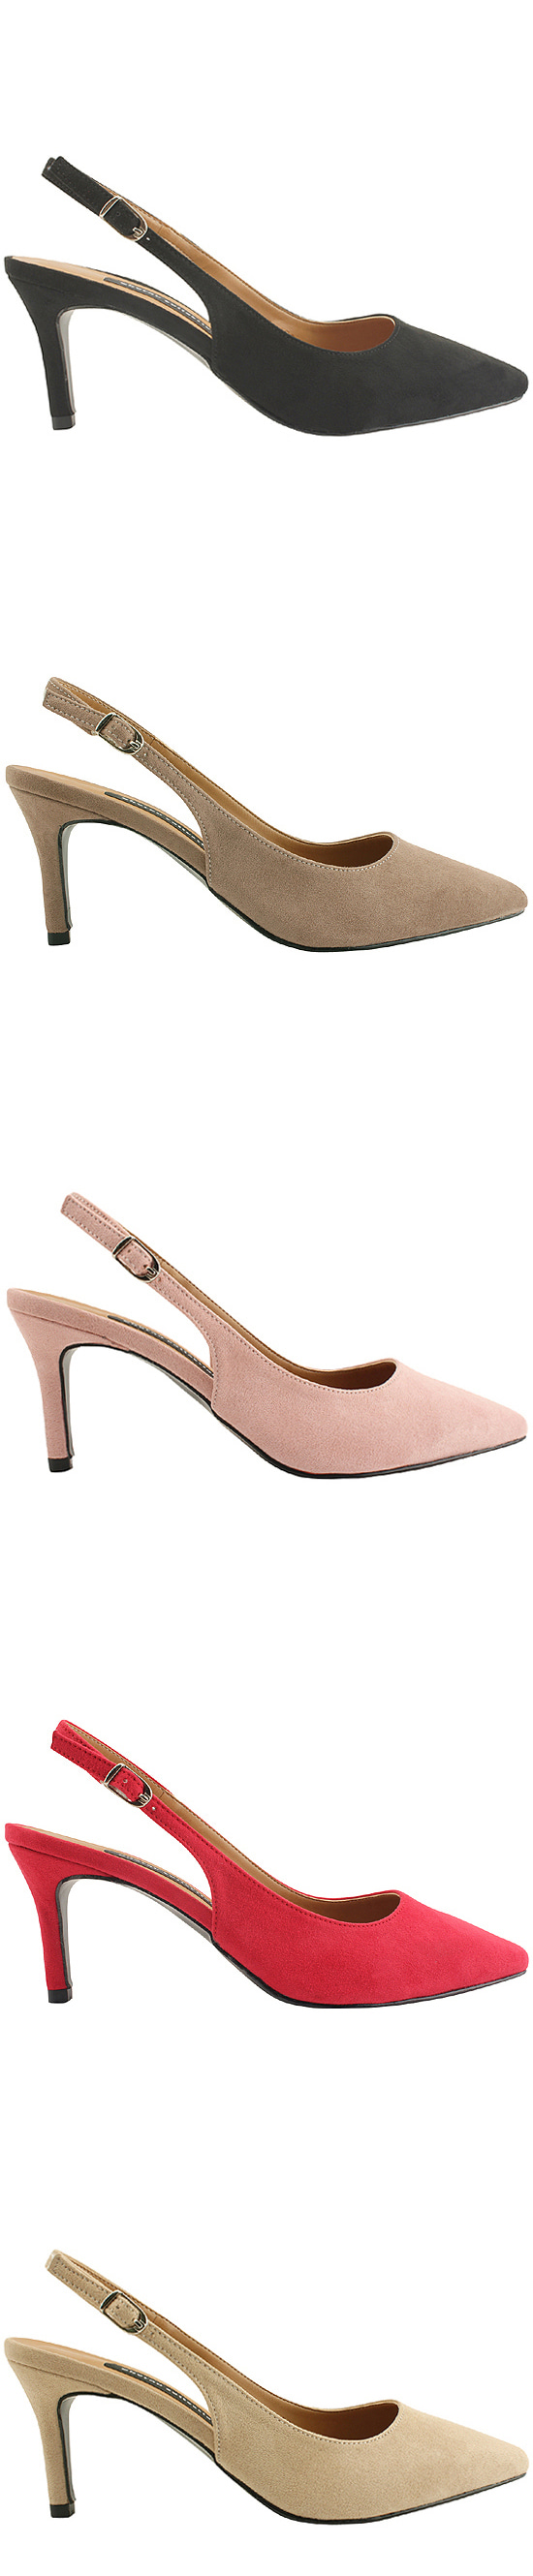 Suede Pointed Nose Slingback High Heels Pink